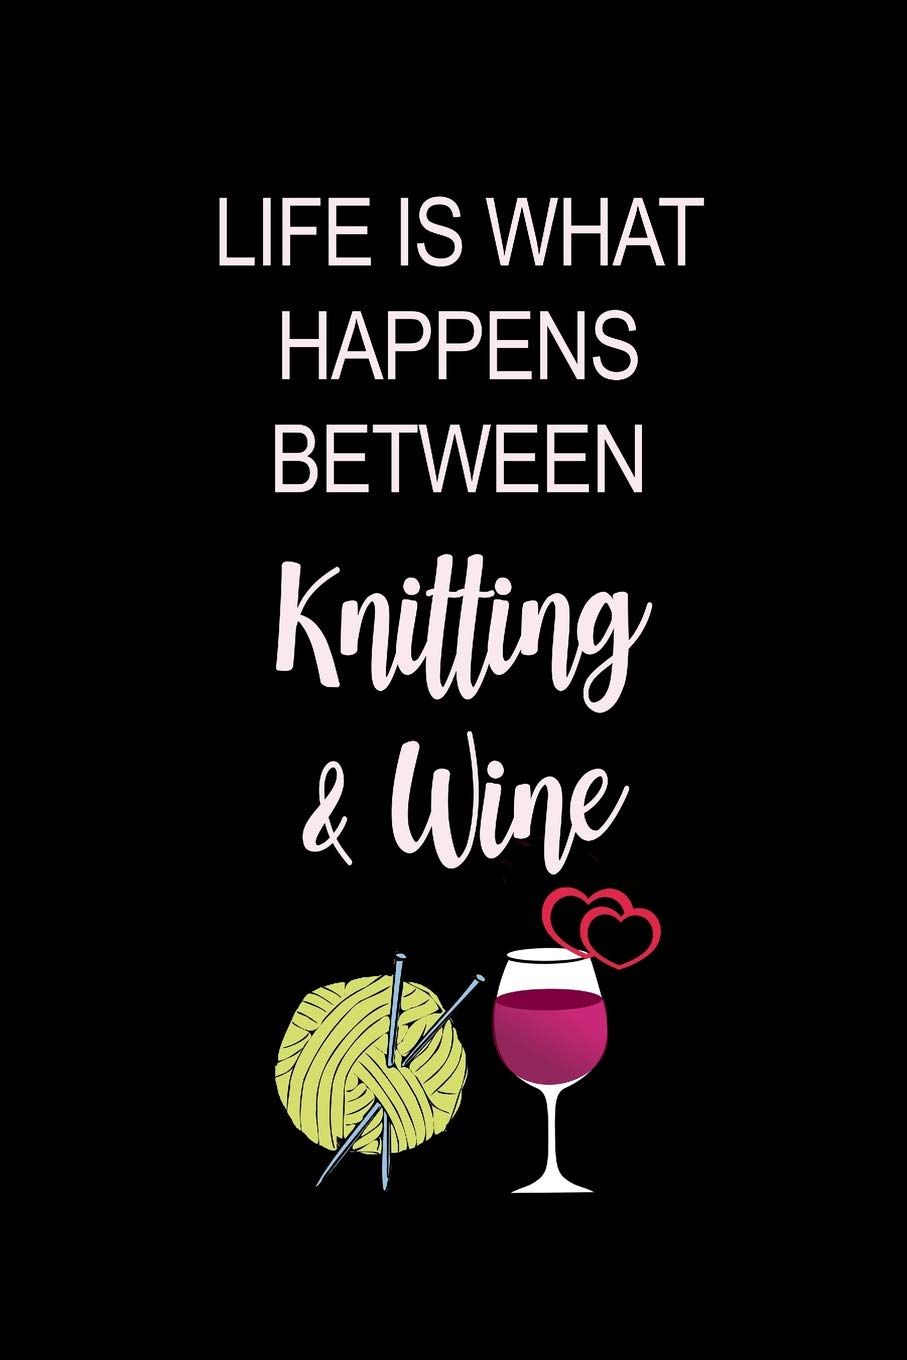 Knitting Wine Hilarious Funny Knitting Notebook Gift For Knitters Who Have Everything Knitting Journal Novelty Gift Small Blank Lined Diary Publishing Ladymberries 9781091716094 Amazon Com Books